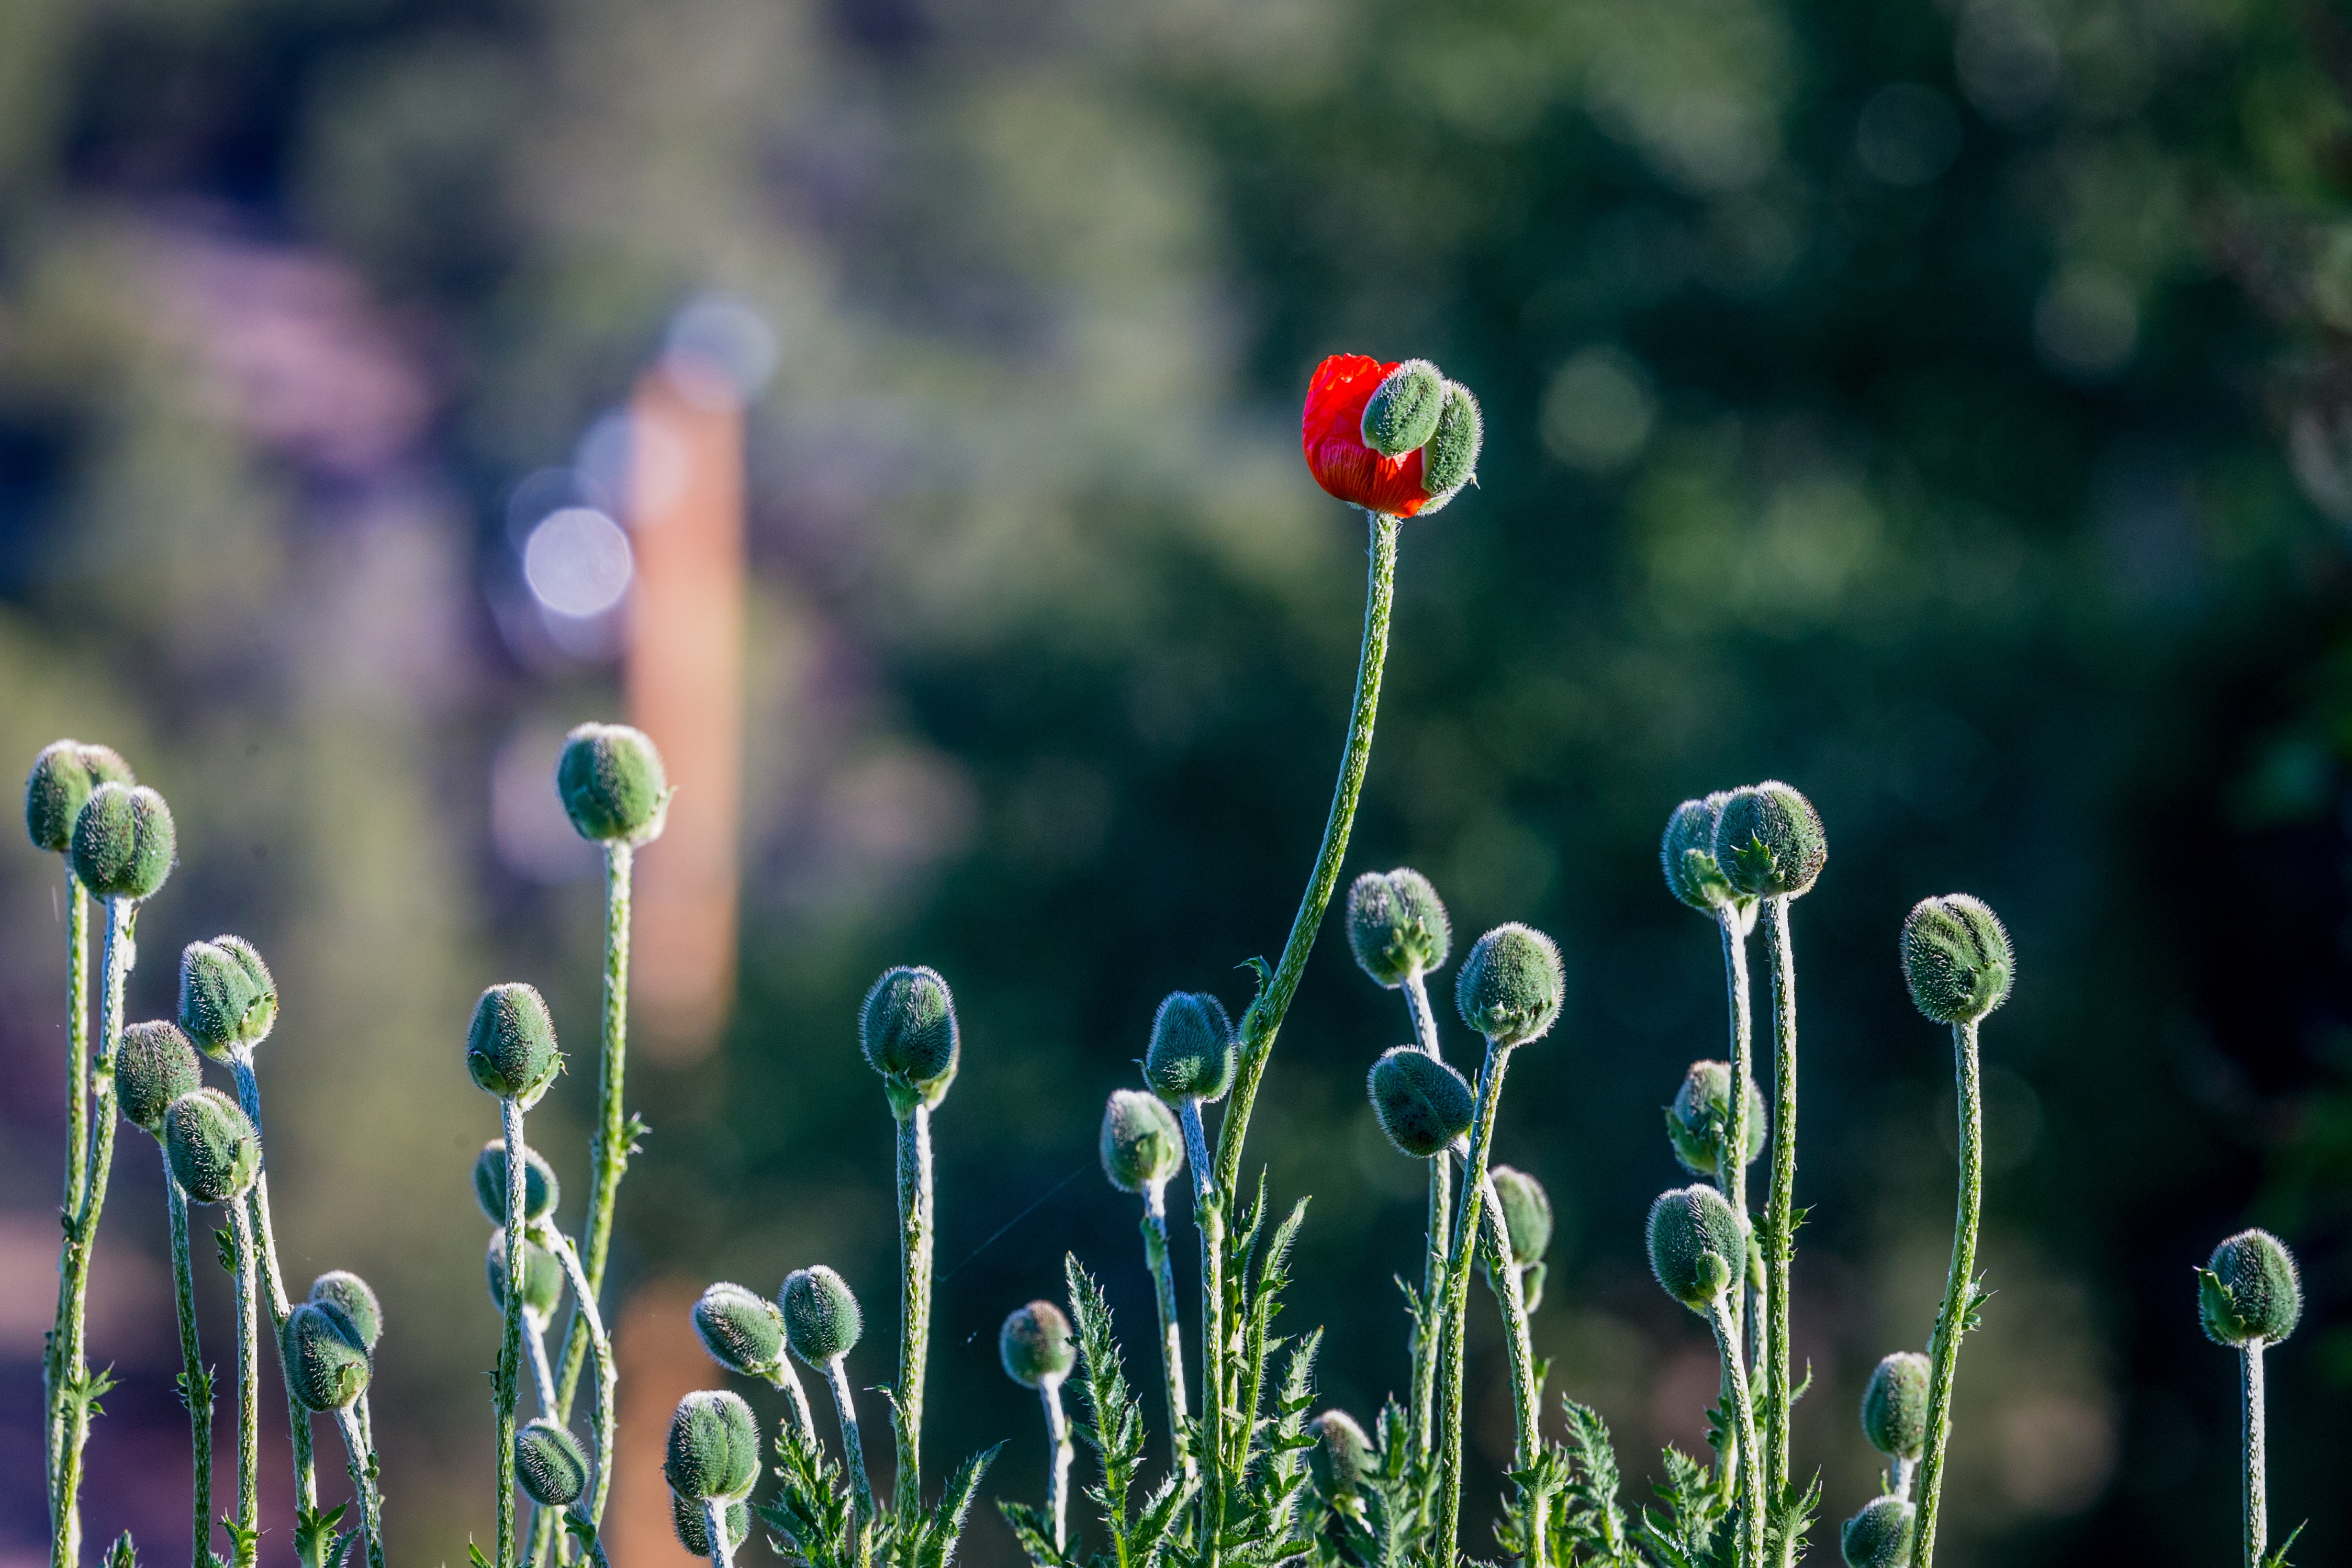 focus photography of green and red petaled flower